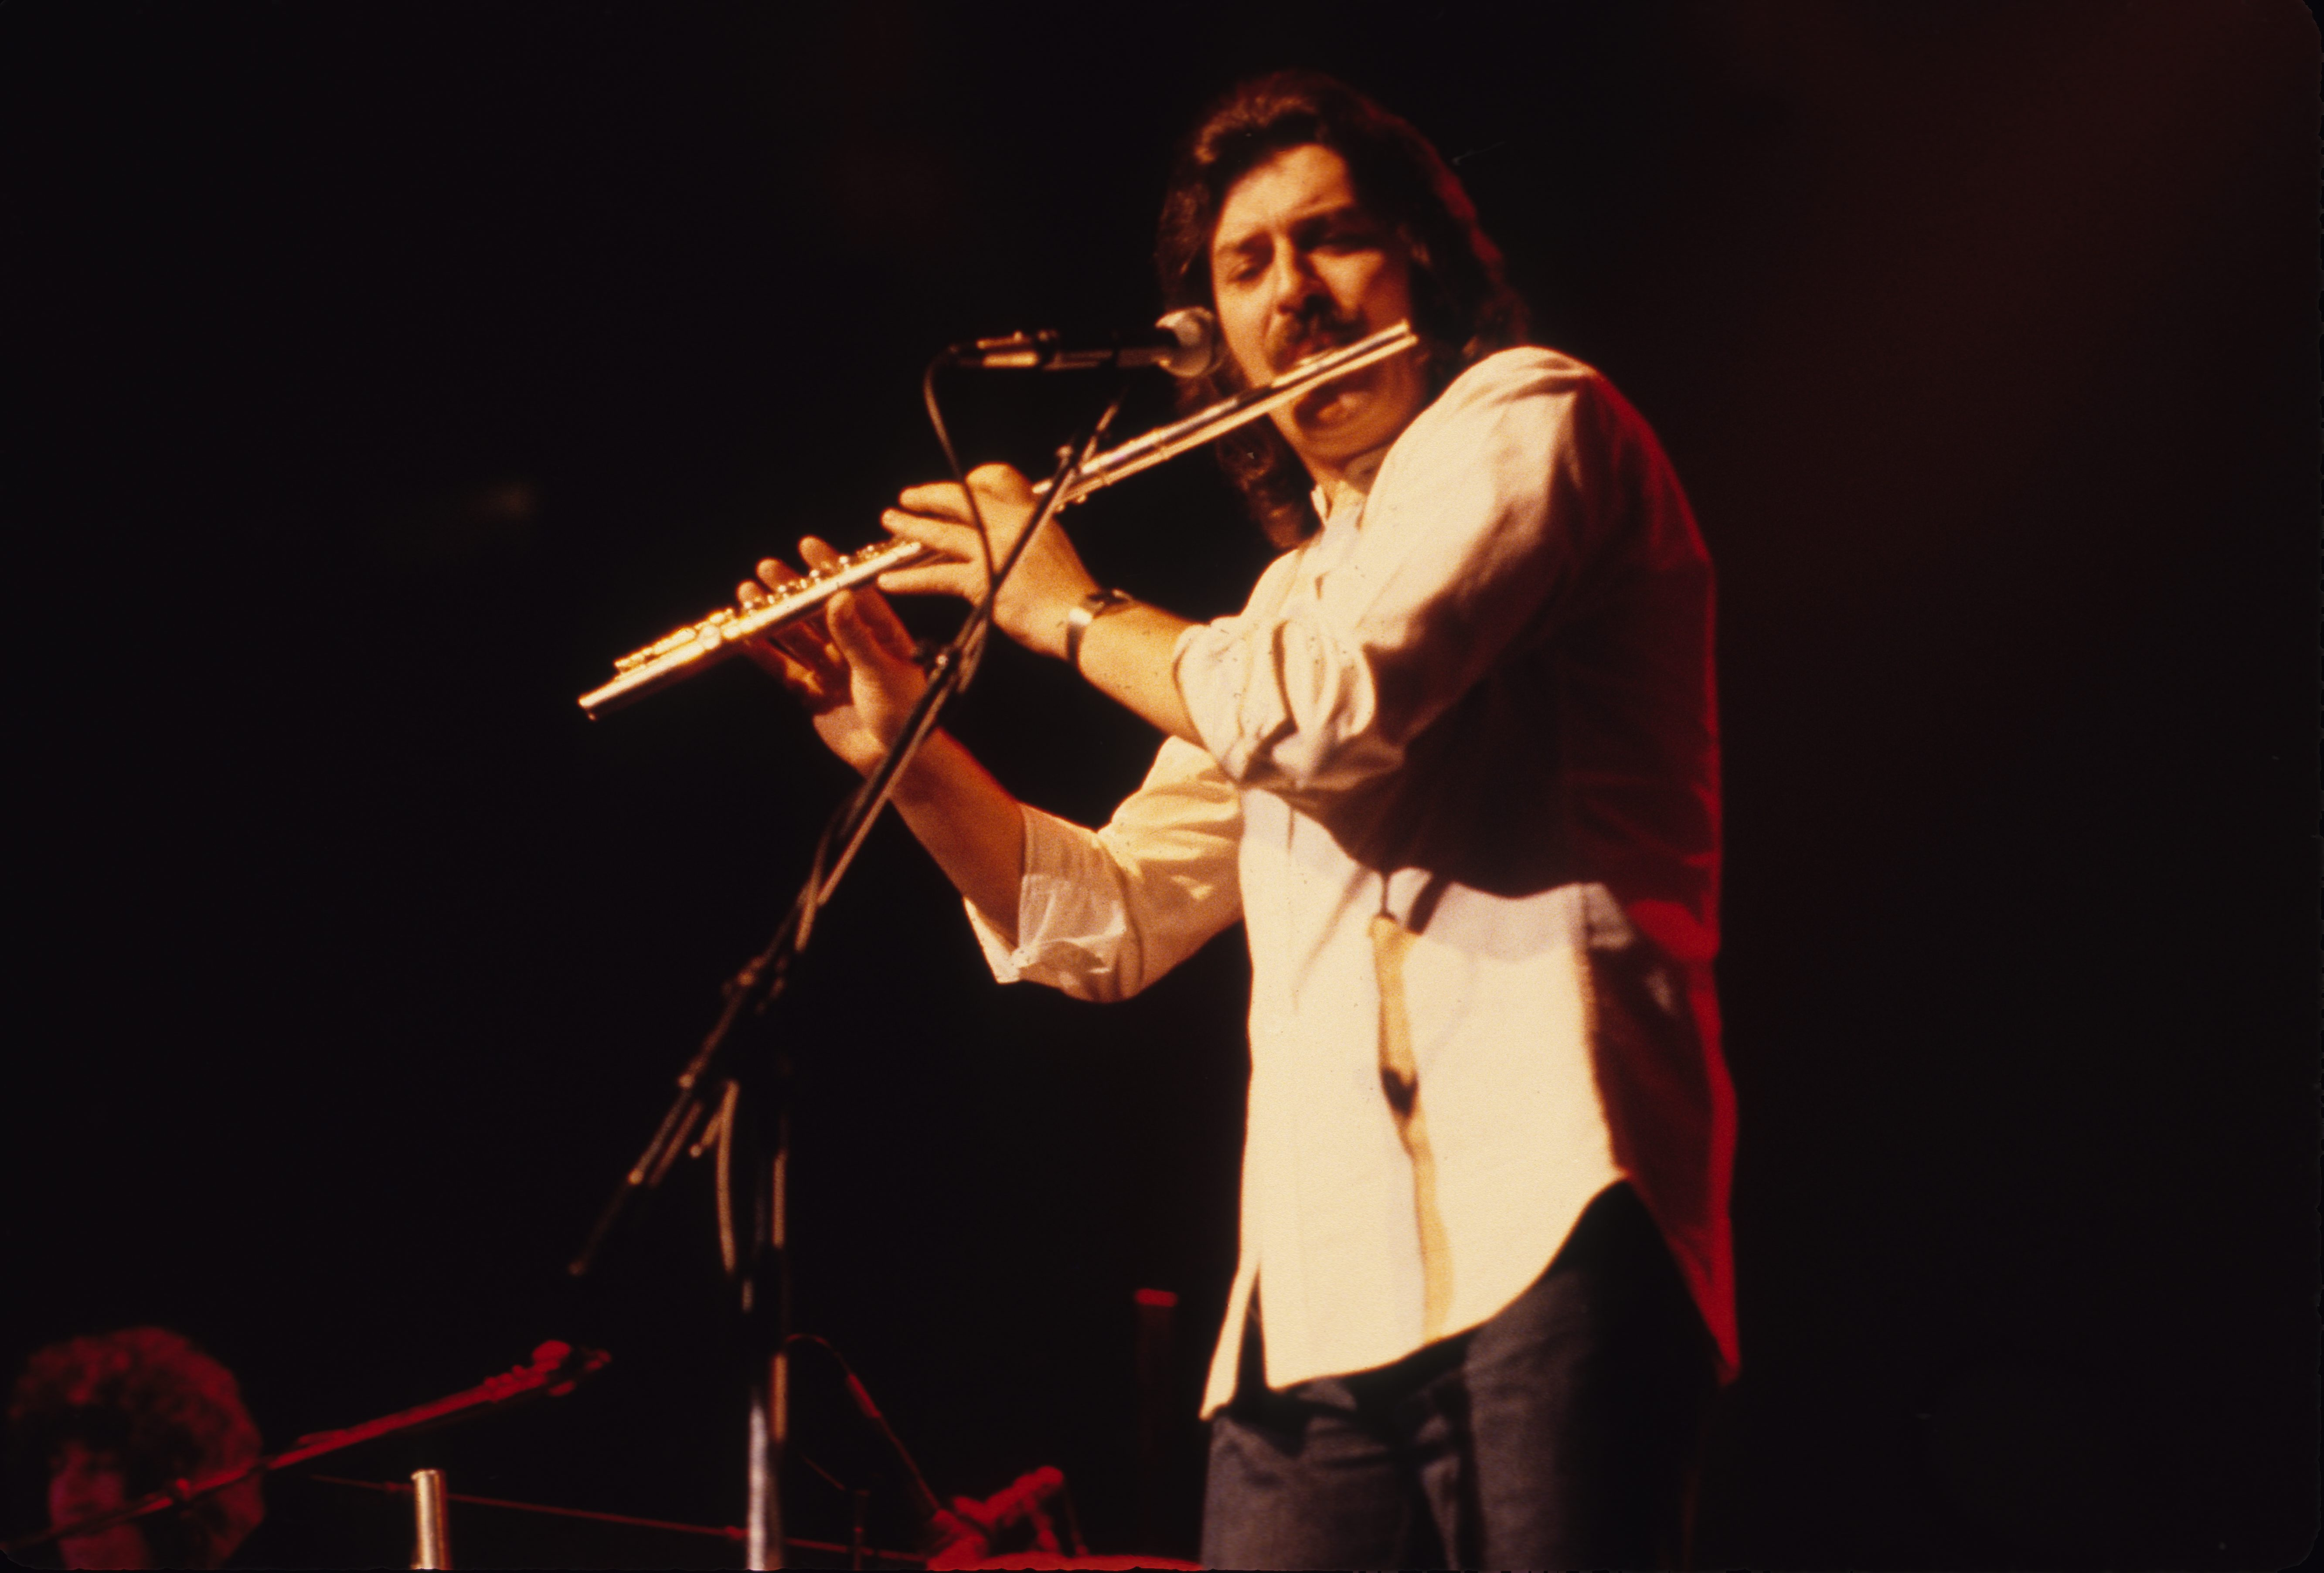 Ray Thomas, Moody Blues Flautist and Founding Member, Dead at 76